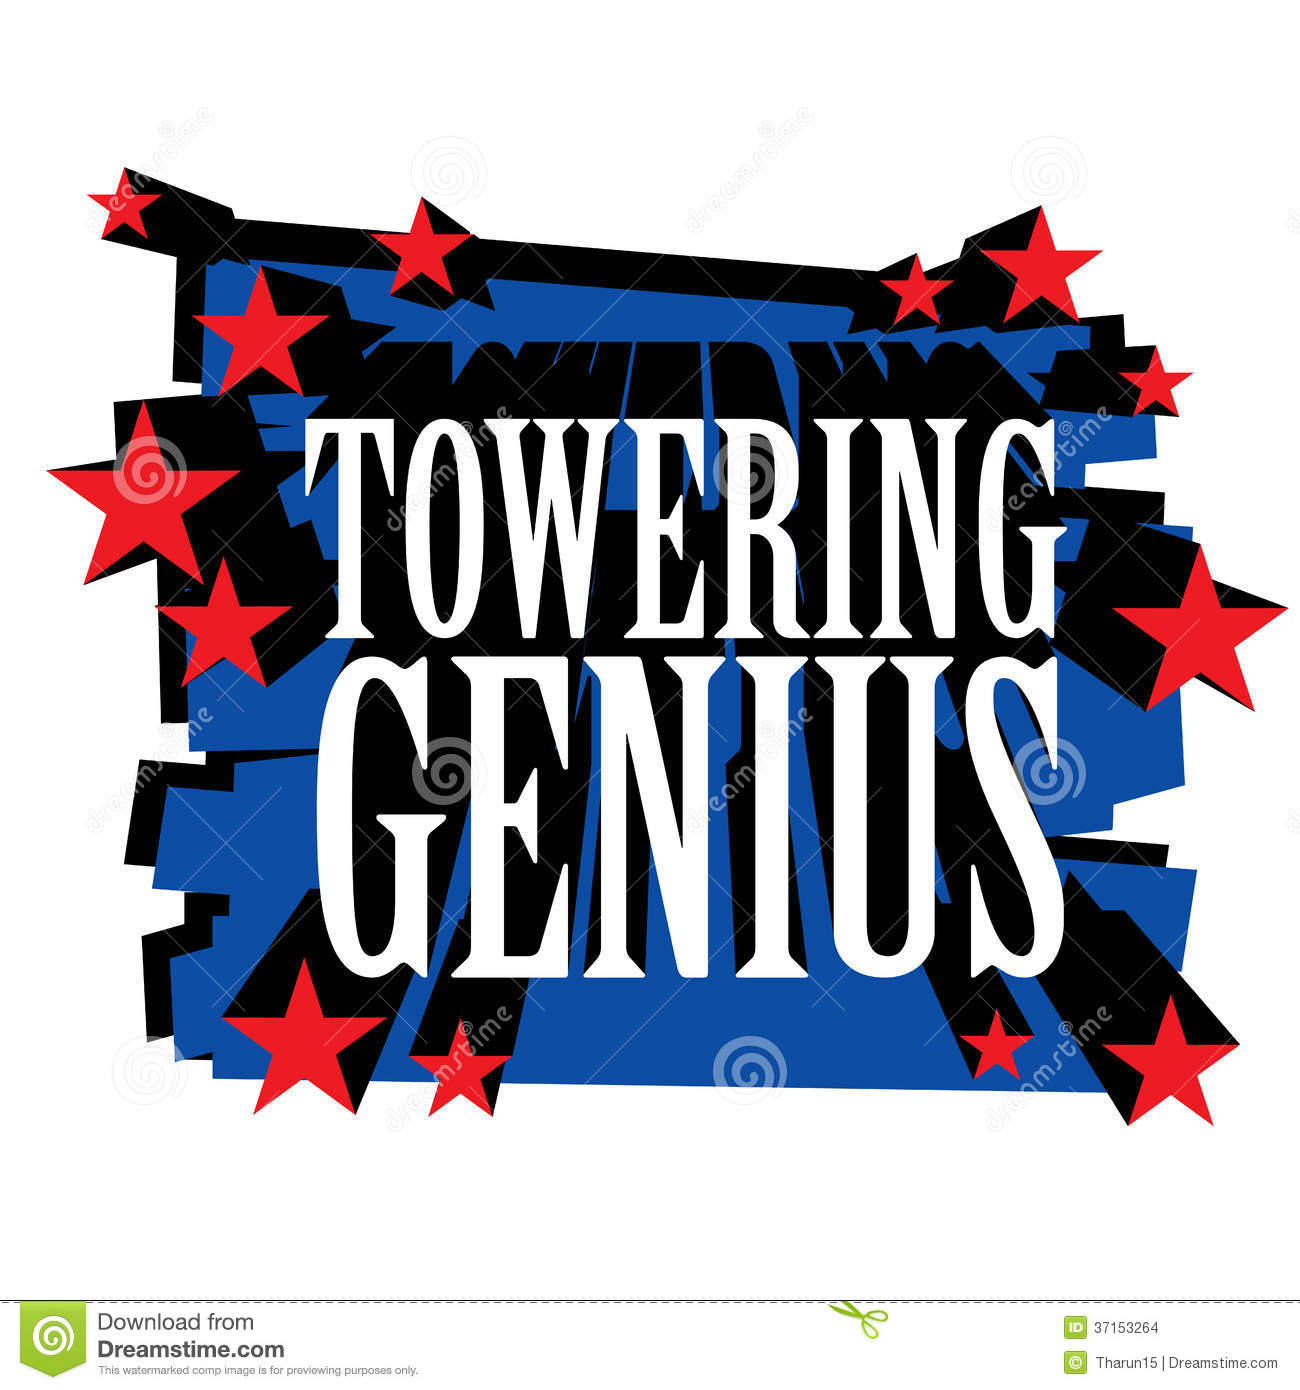 Towering Genius Disdains A Beaten Path It Seeks Regions Hitherto Unexplored Famous Quote By The 16th President Of USA More Similar Stock Illustrations